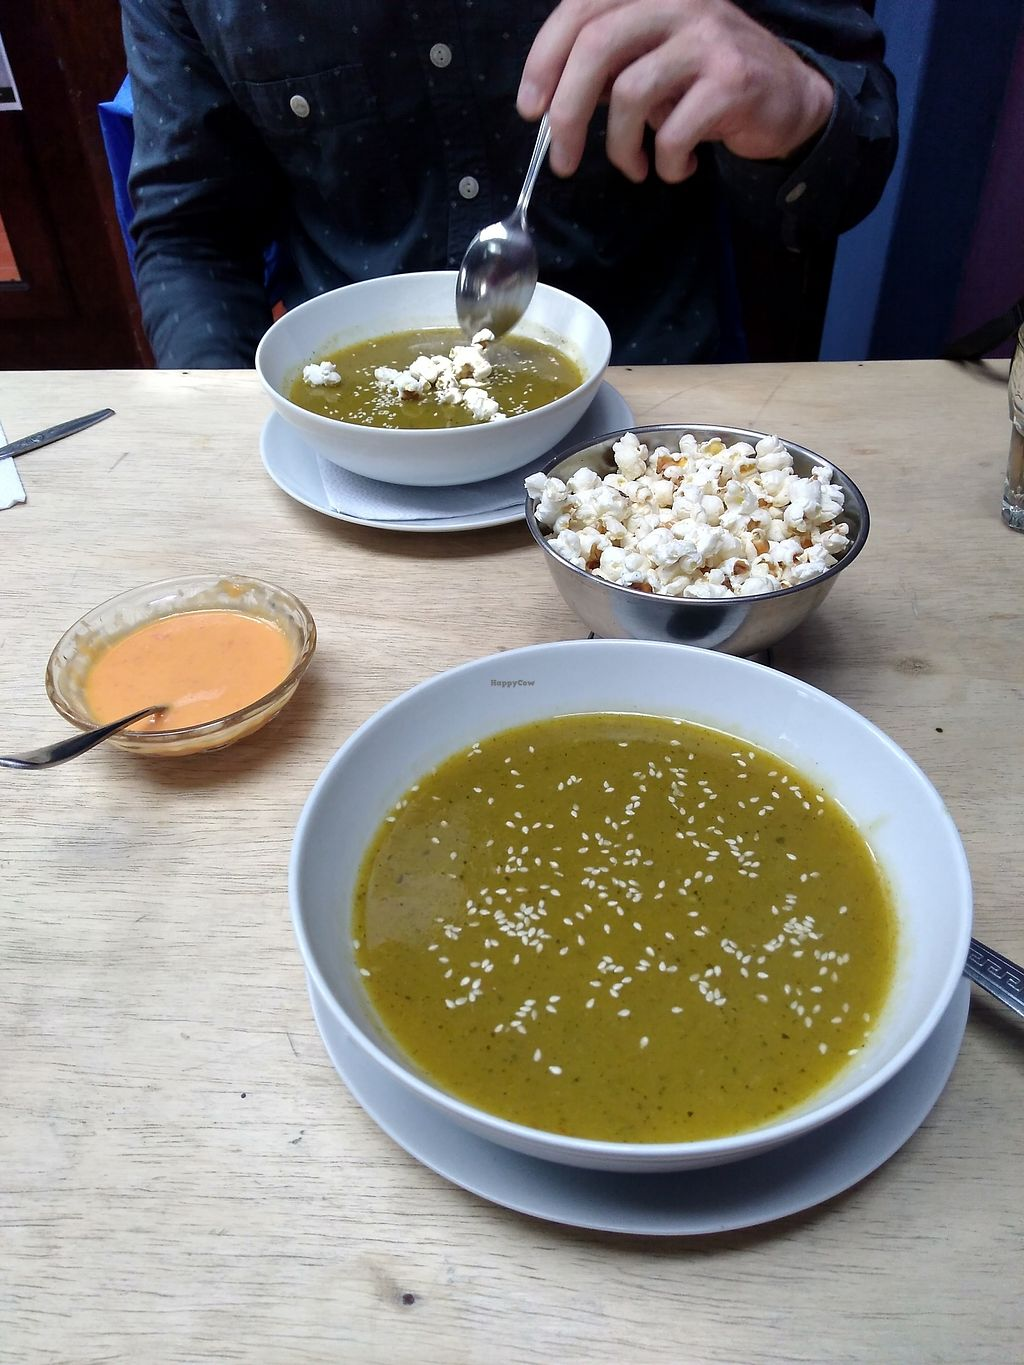 """Photo of Flora  by <a href=""""/members/profile/emzie1983"""">emzie1983</a> <br/>Courgette soup <br/> February 19, 2018  - <a href='/contact/abuse/image/90014/361449'>Report</a>"""